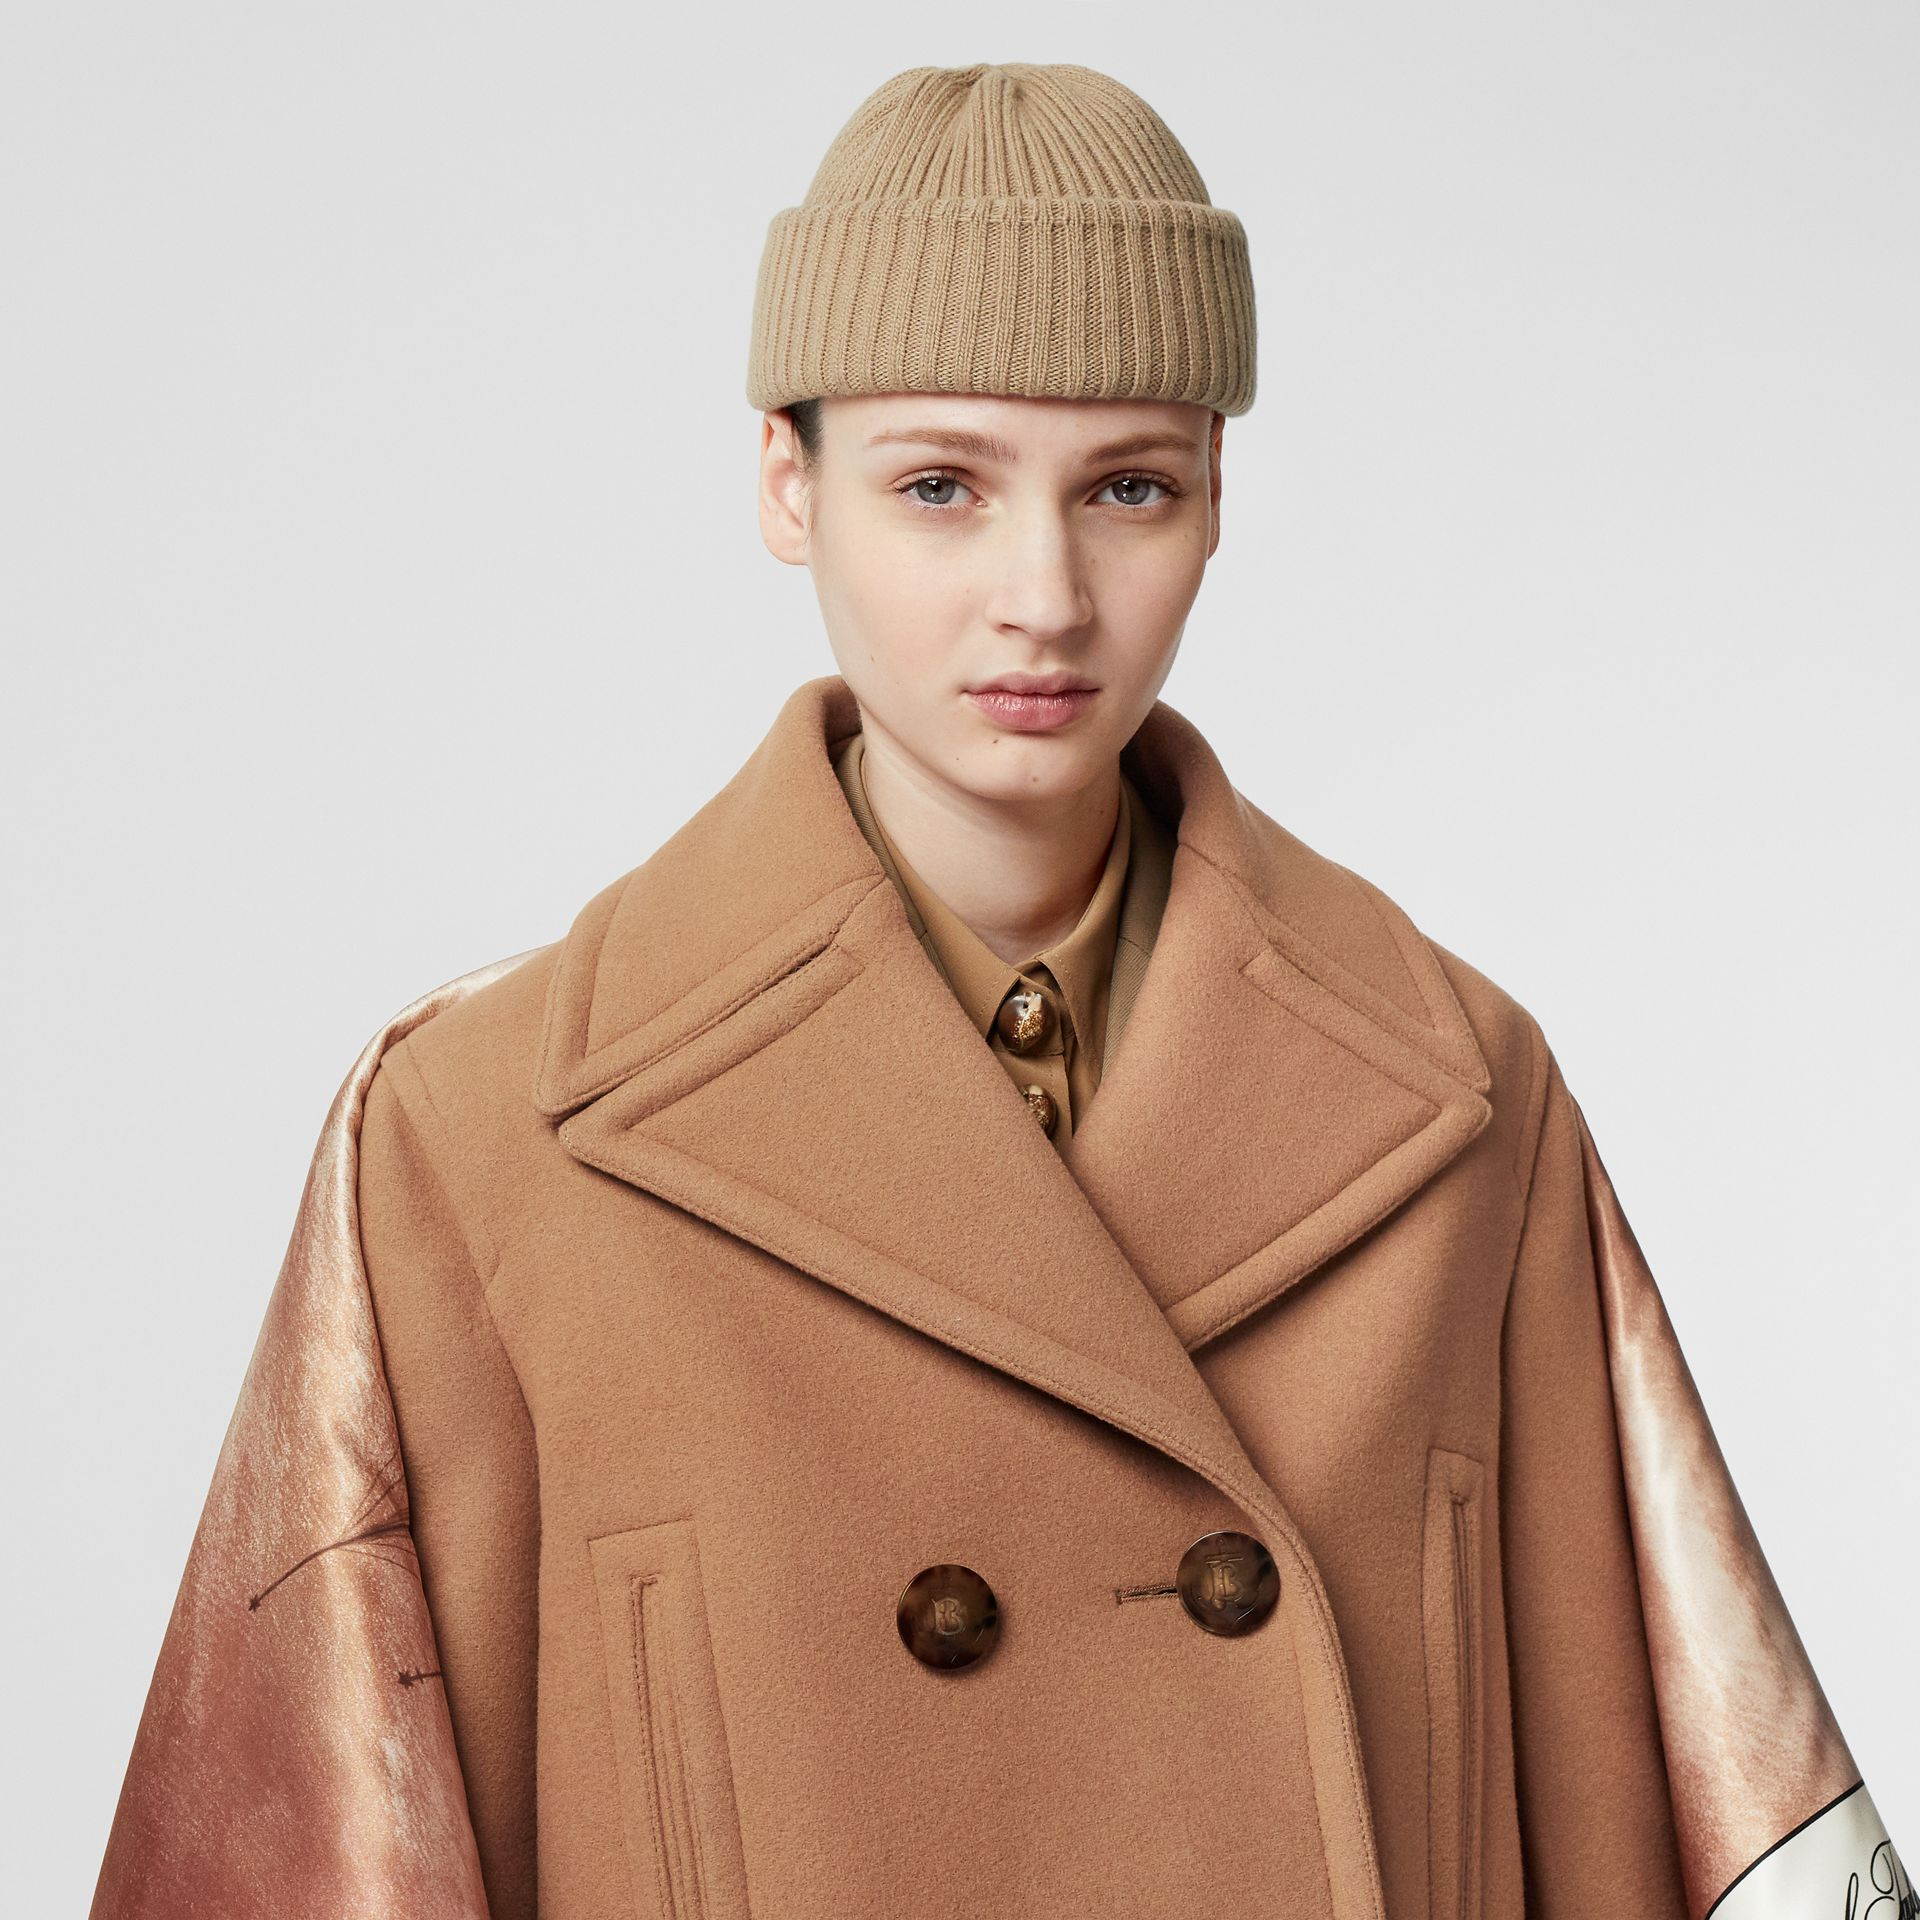 Mariner Print Blanket Detail Technical Wool Pea Coat in Warm Camel - Women | Burberry Hong Kong S.A.R - gallery image 7